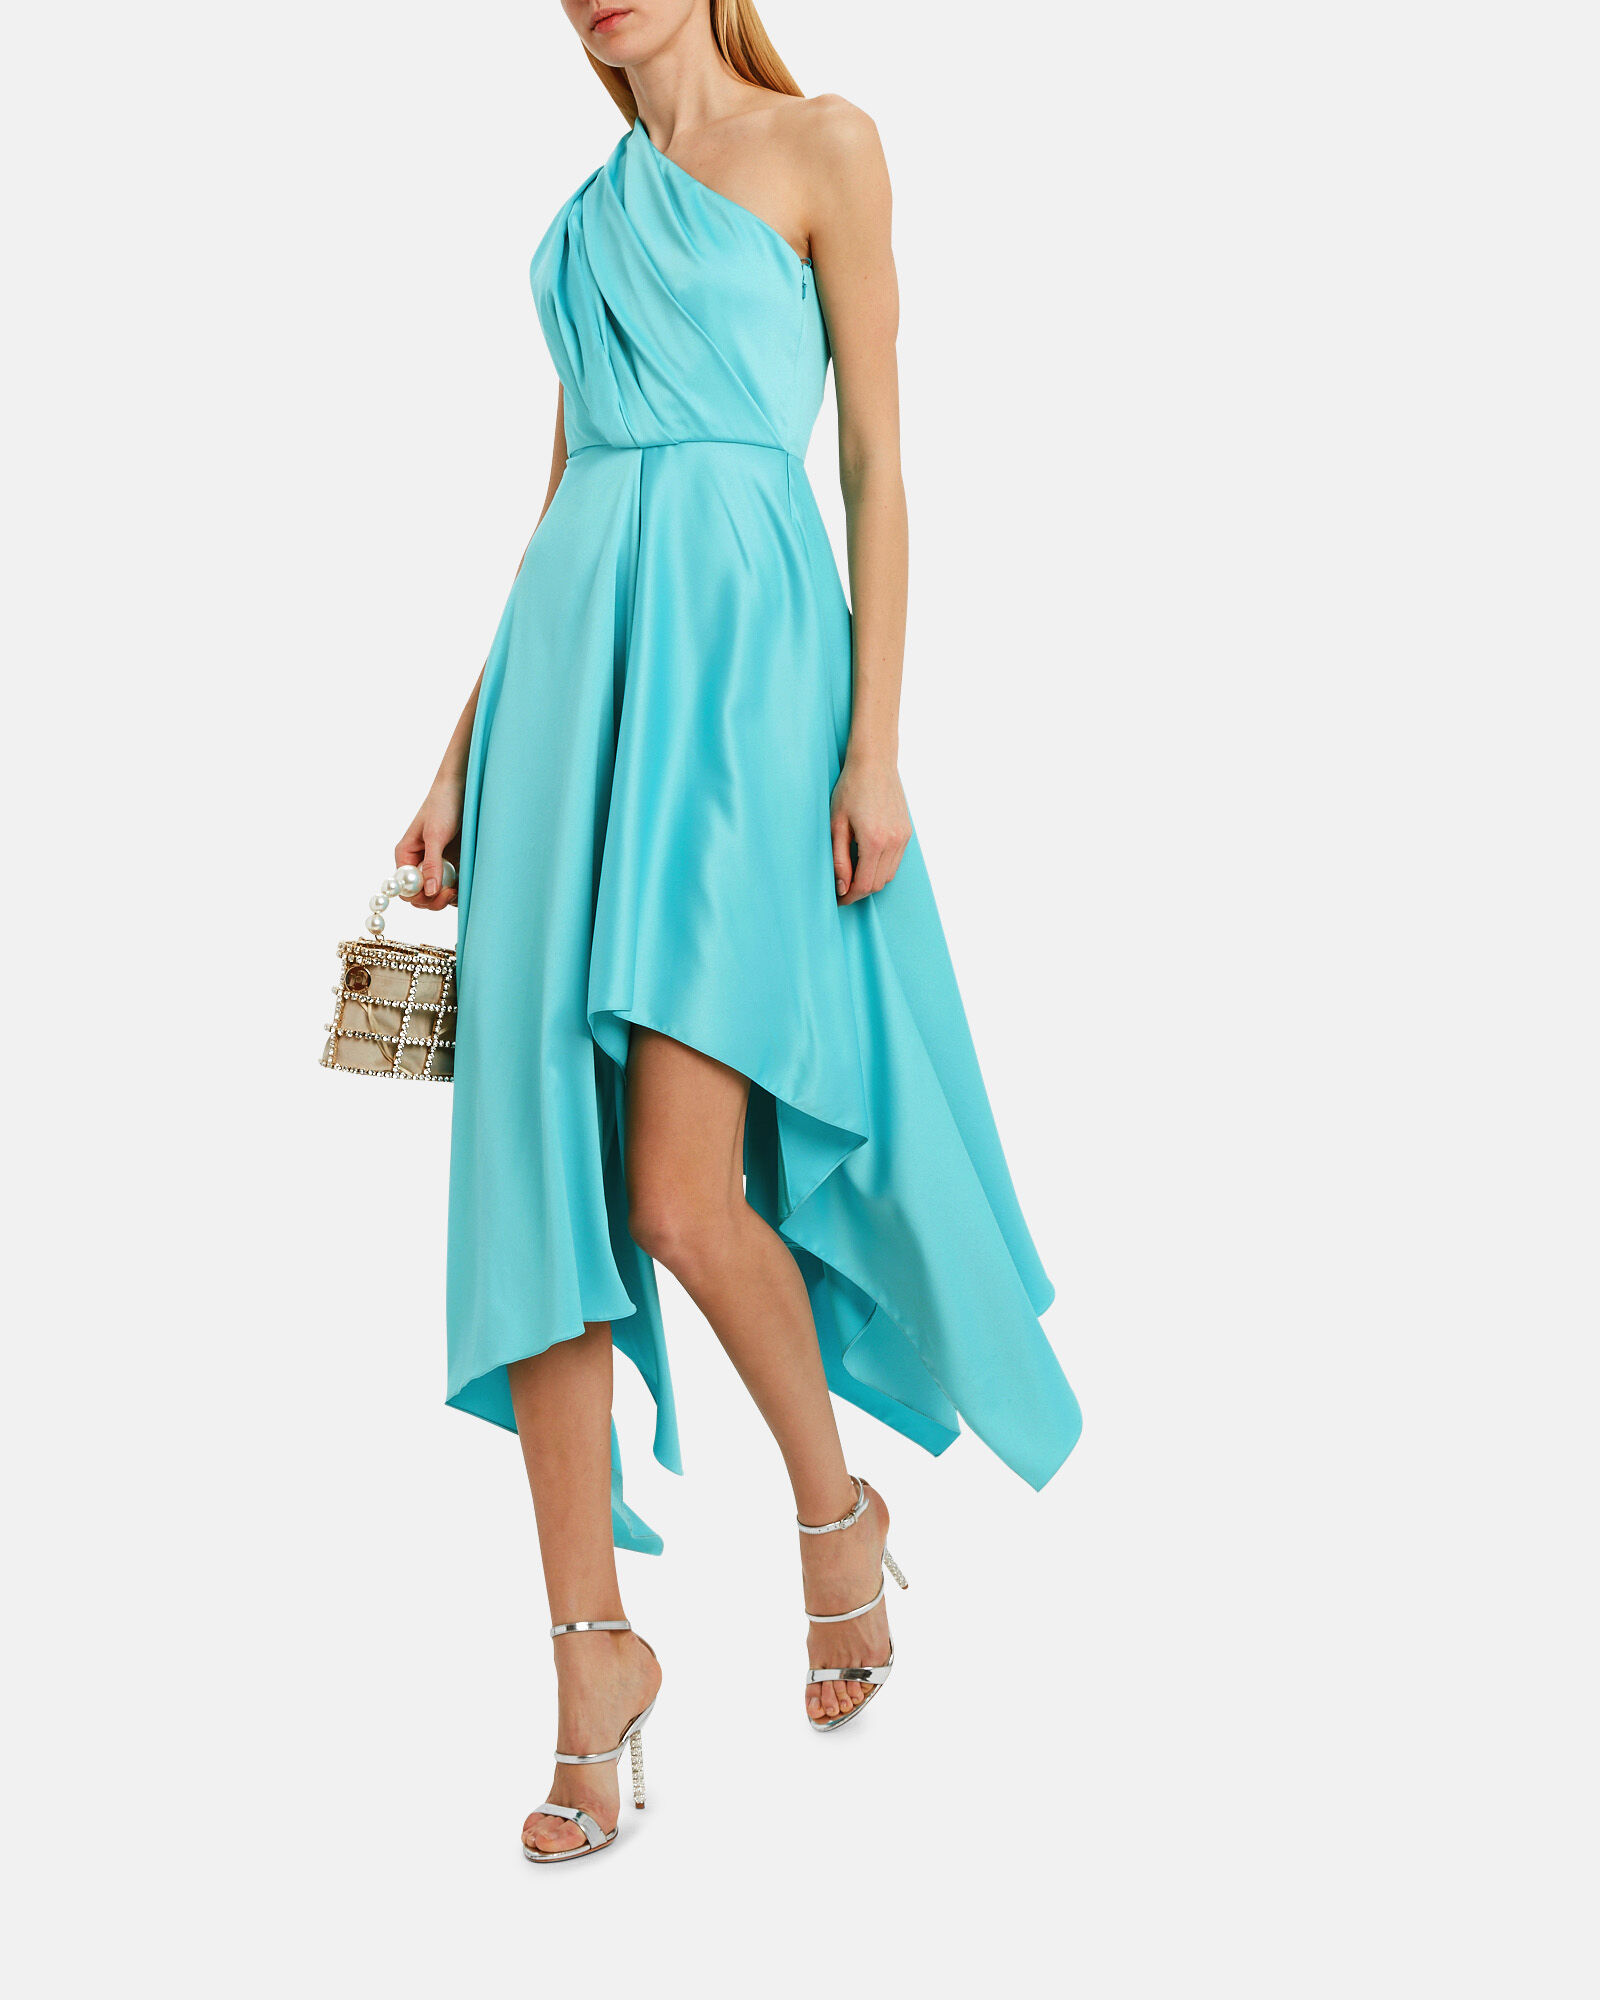 Marine One Shoulder Dress, TURQUOISE, hi-res